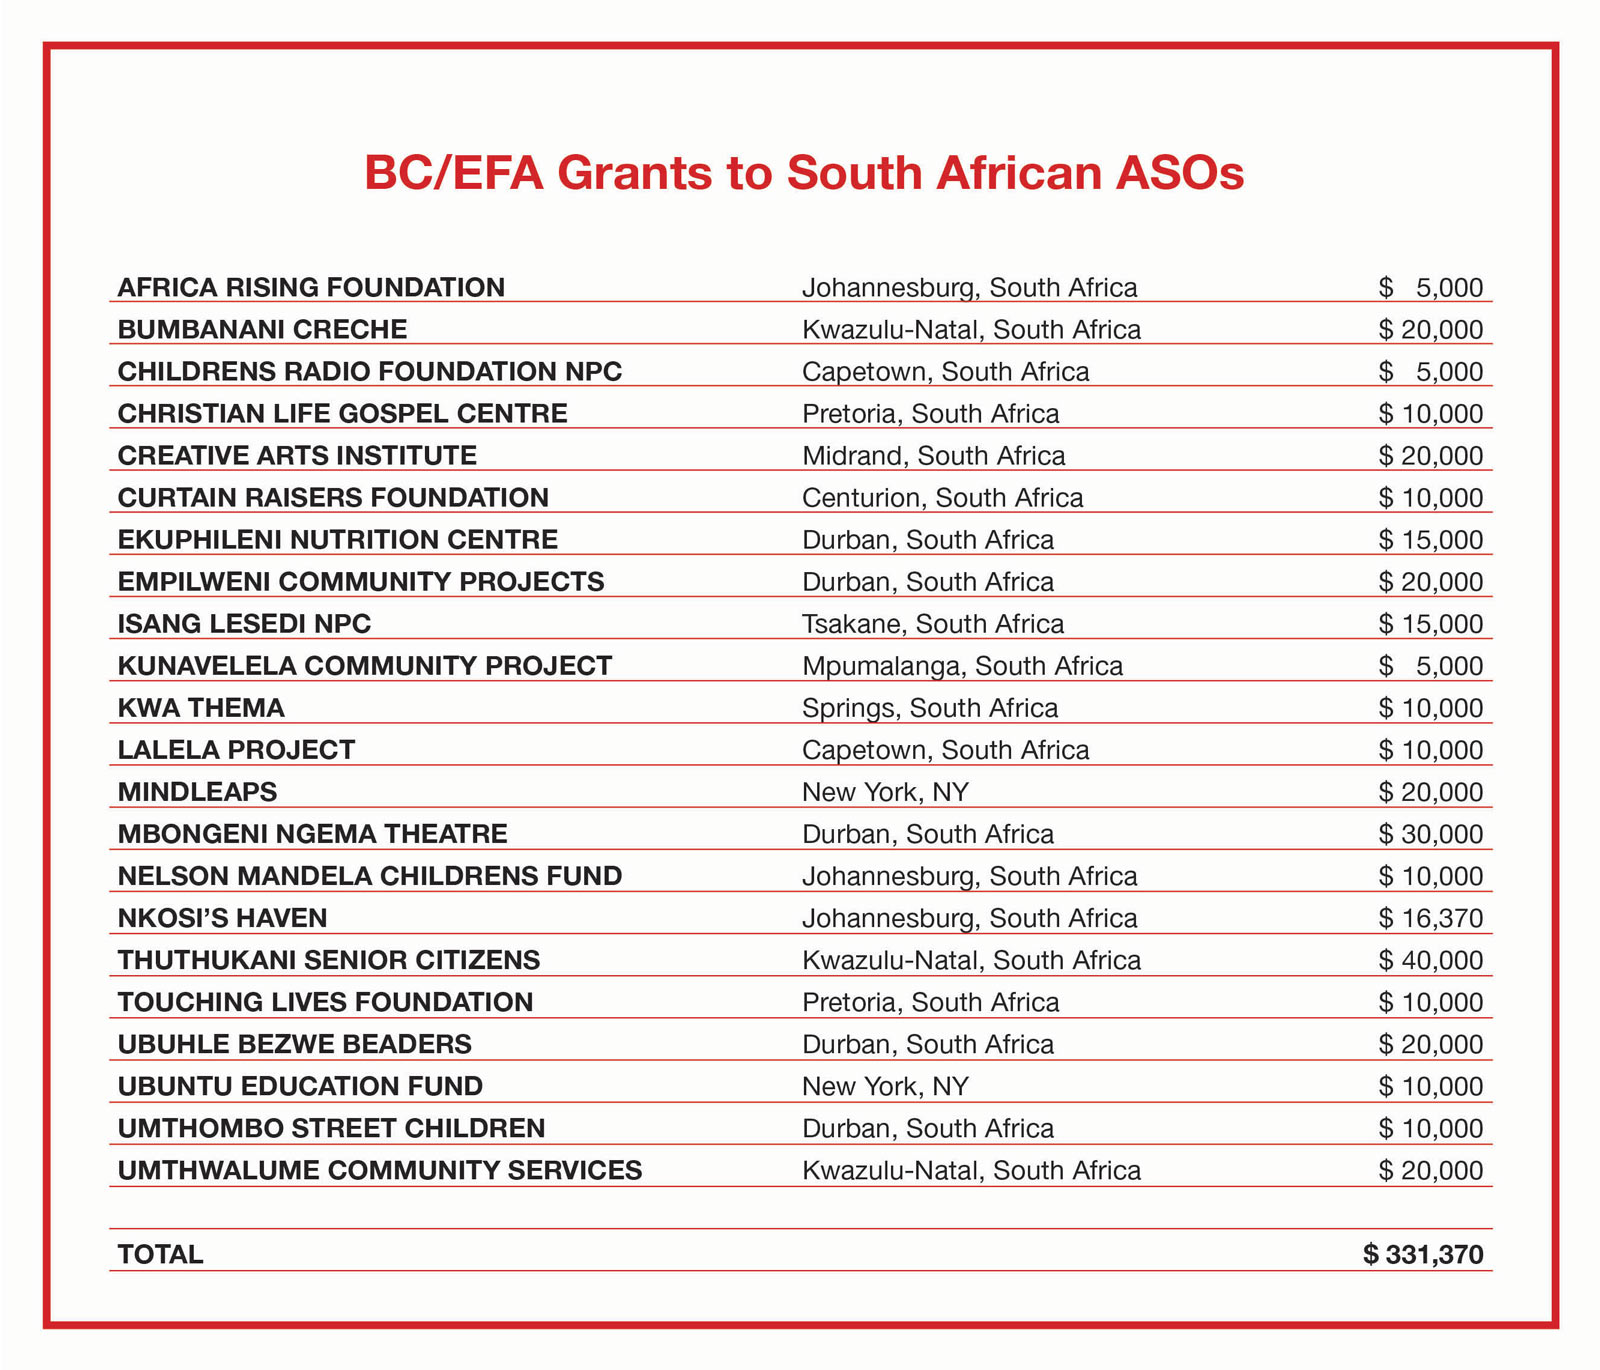 AR 2011-2015 BCEFA Grants to South African ASOs